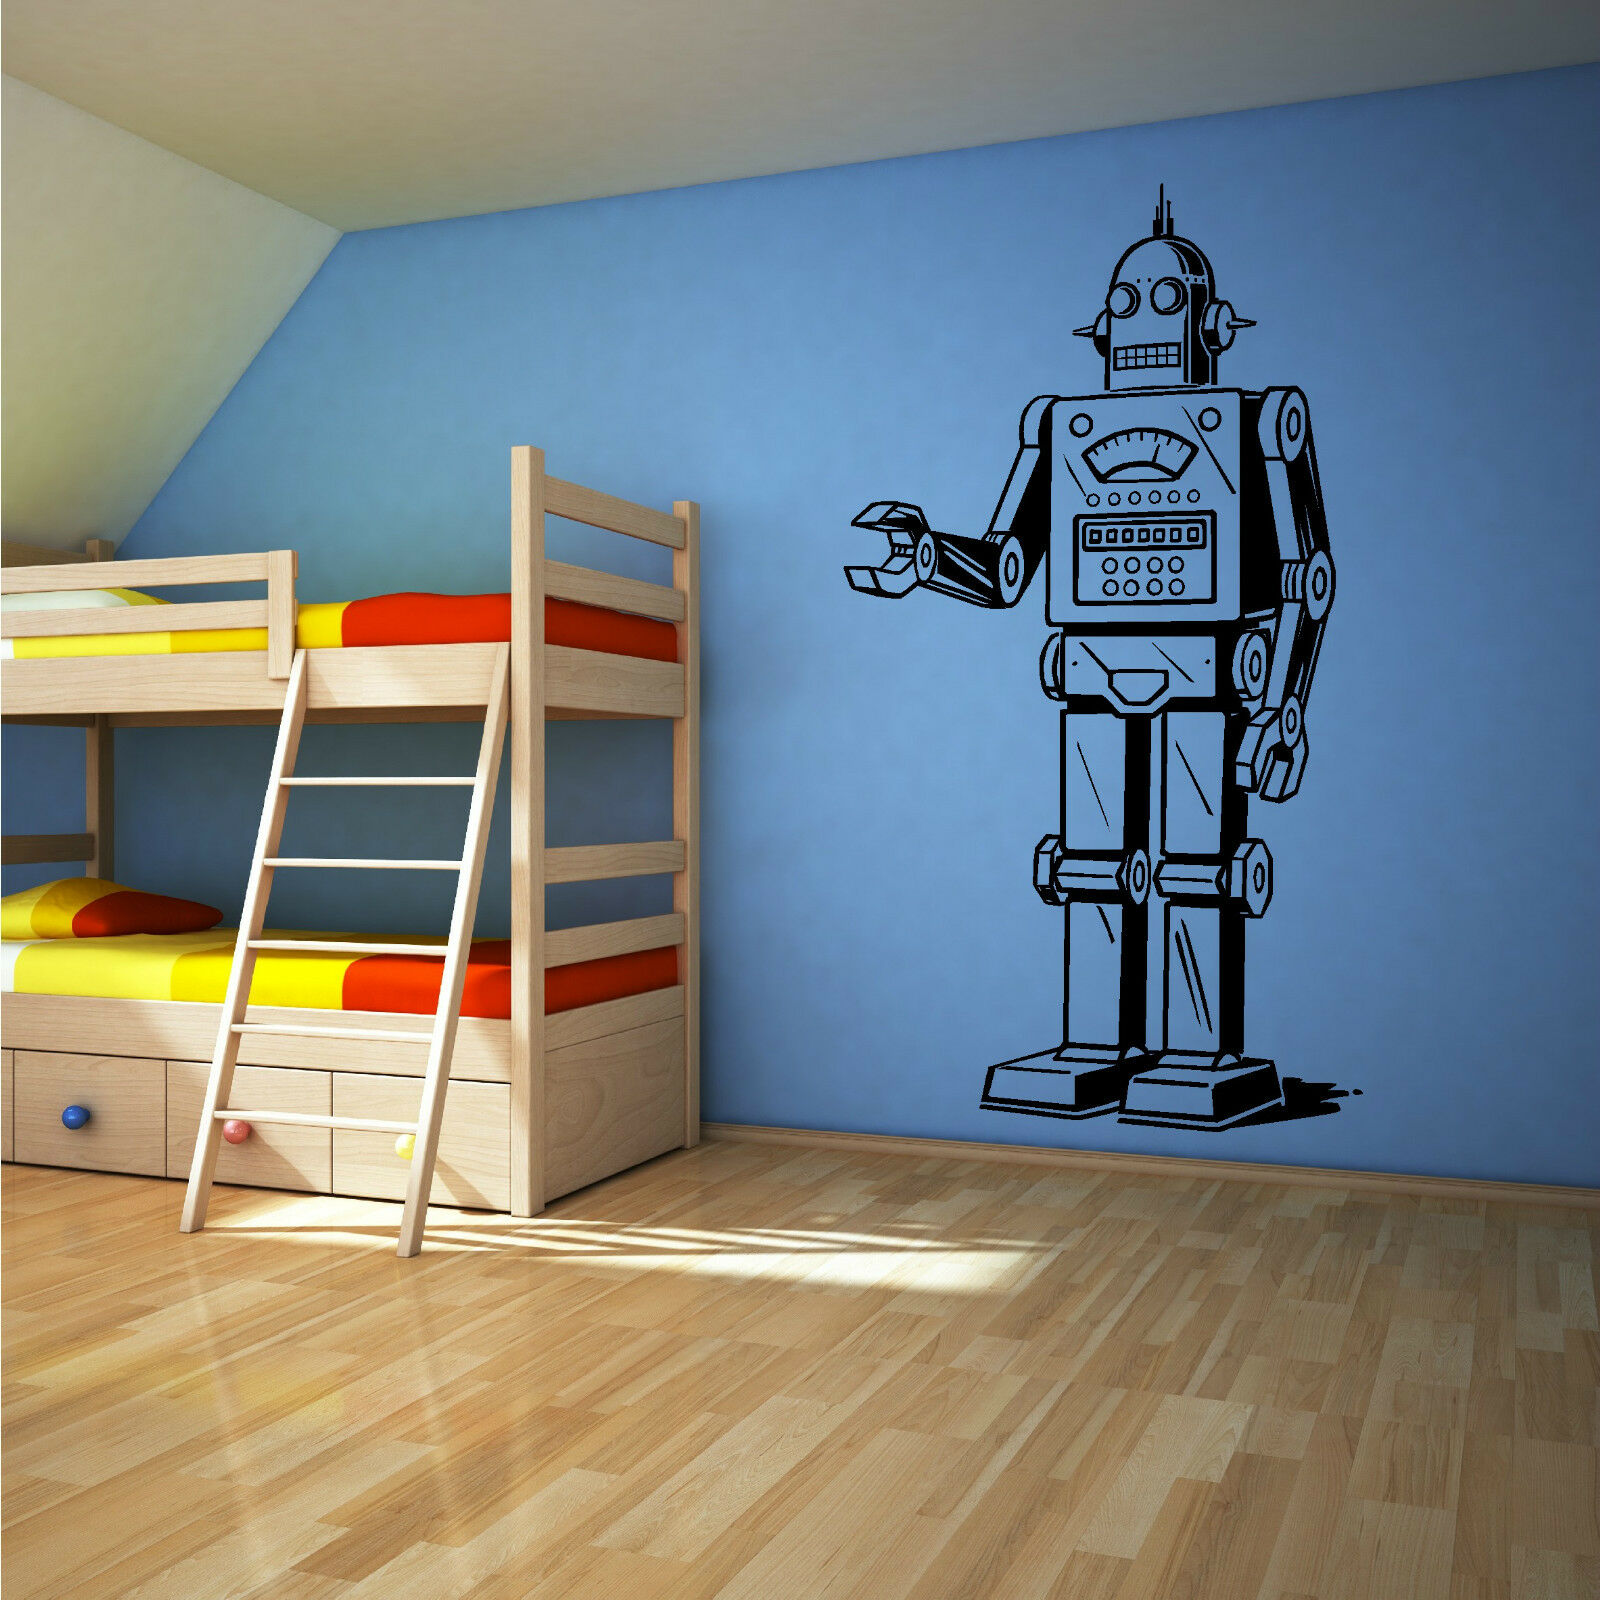 Robot vinyl wall art sticker decal boys bedroom childrens for Boys wall art